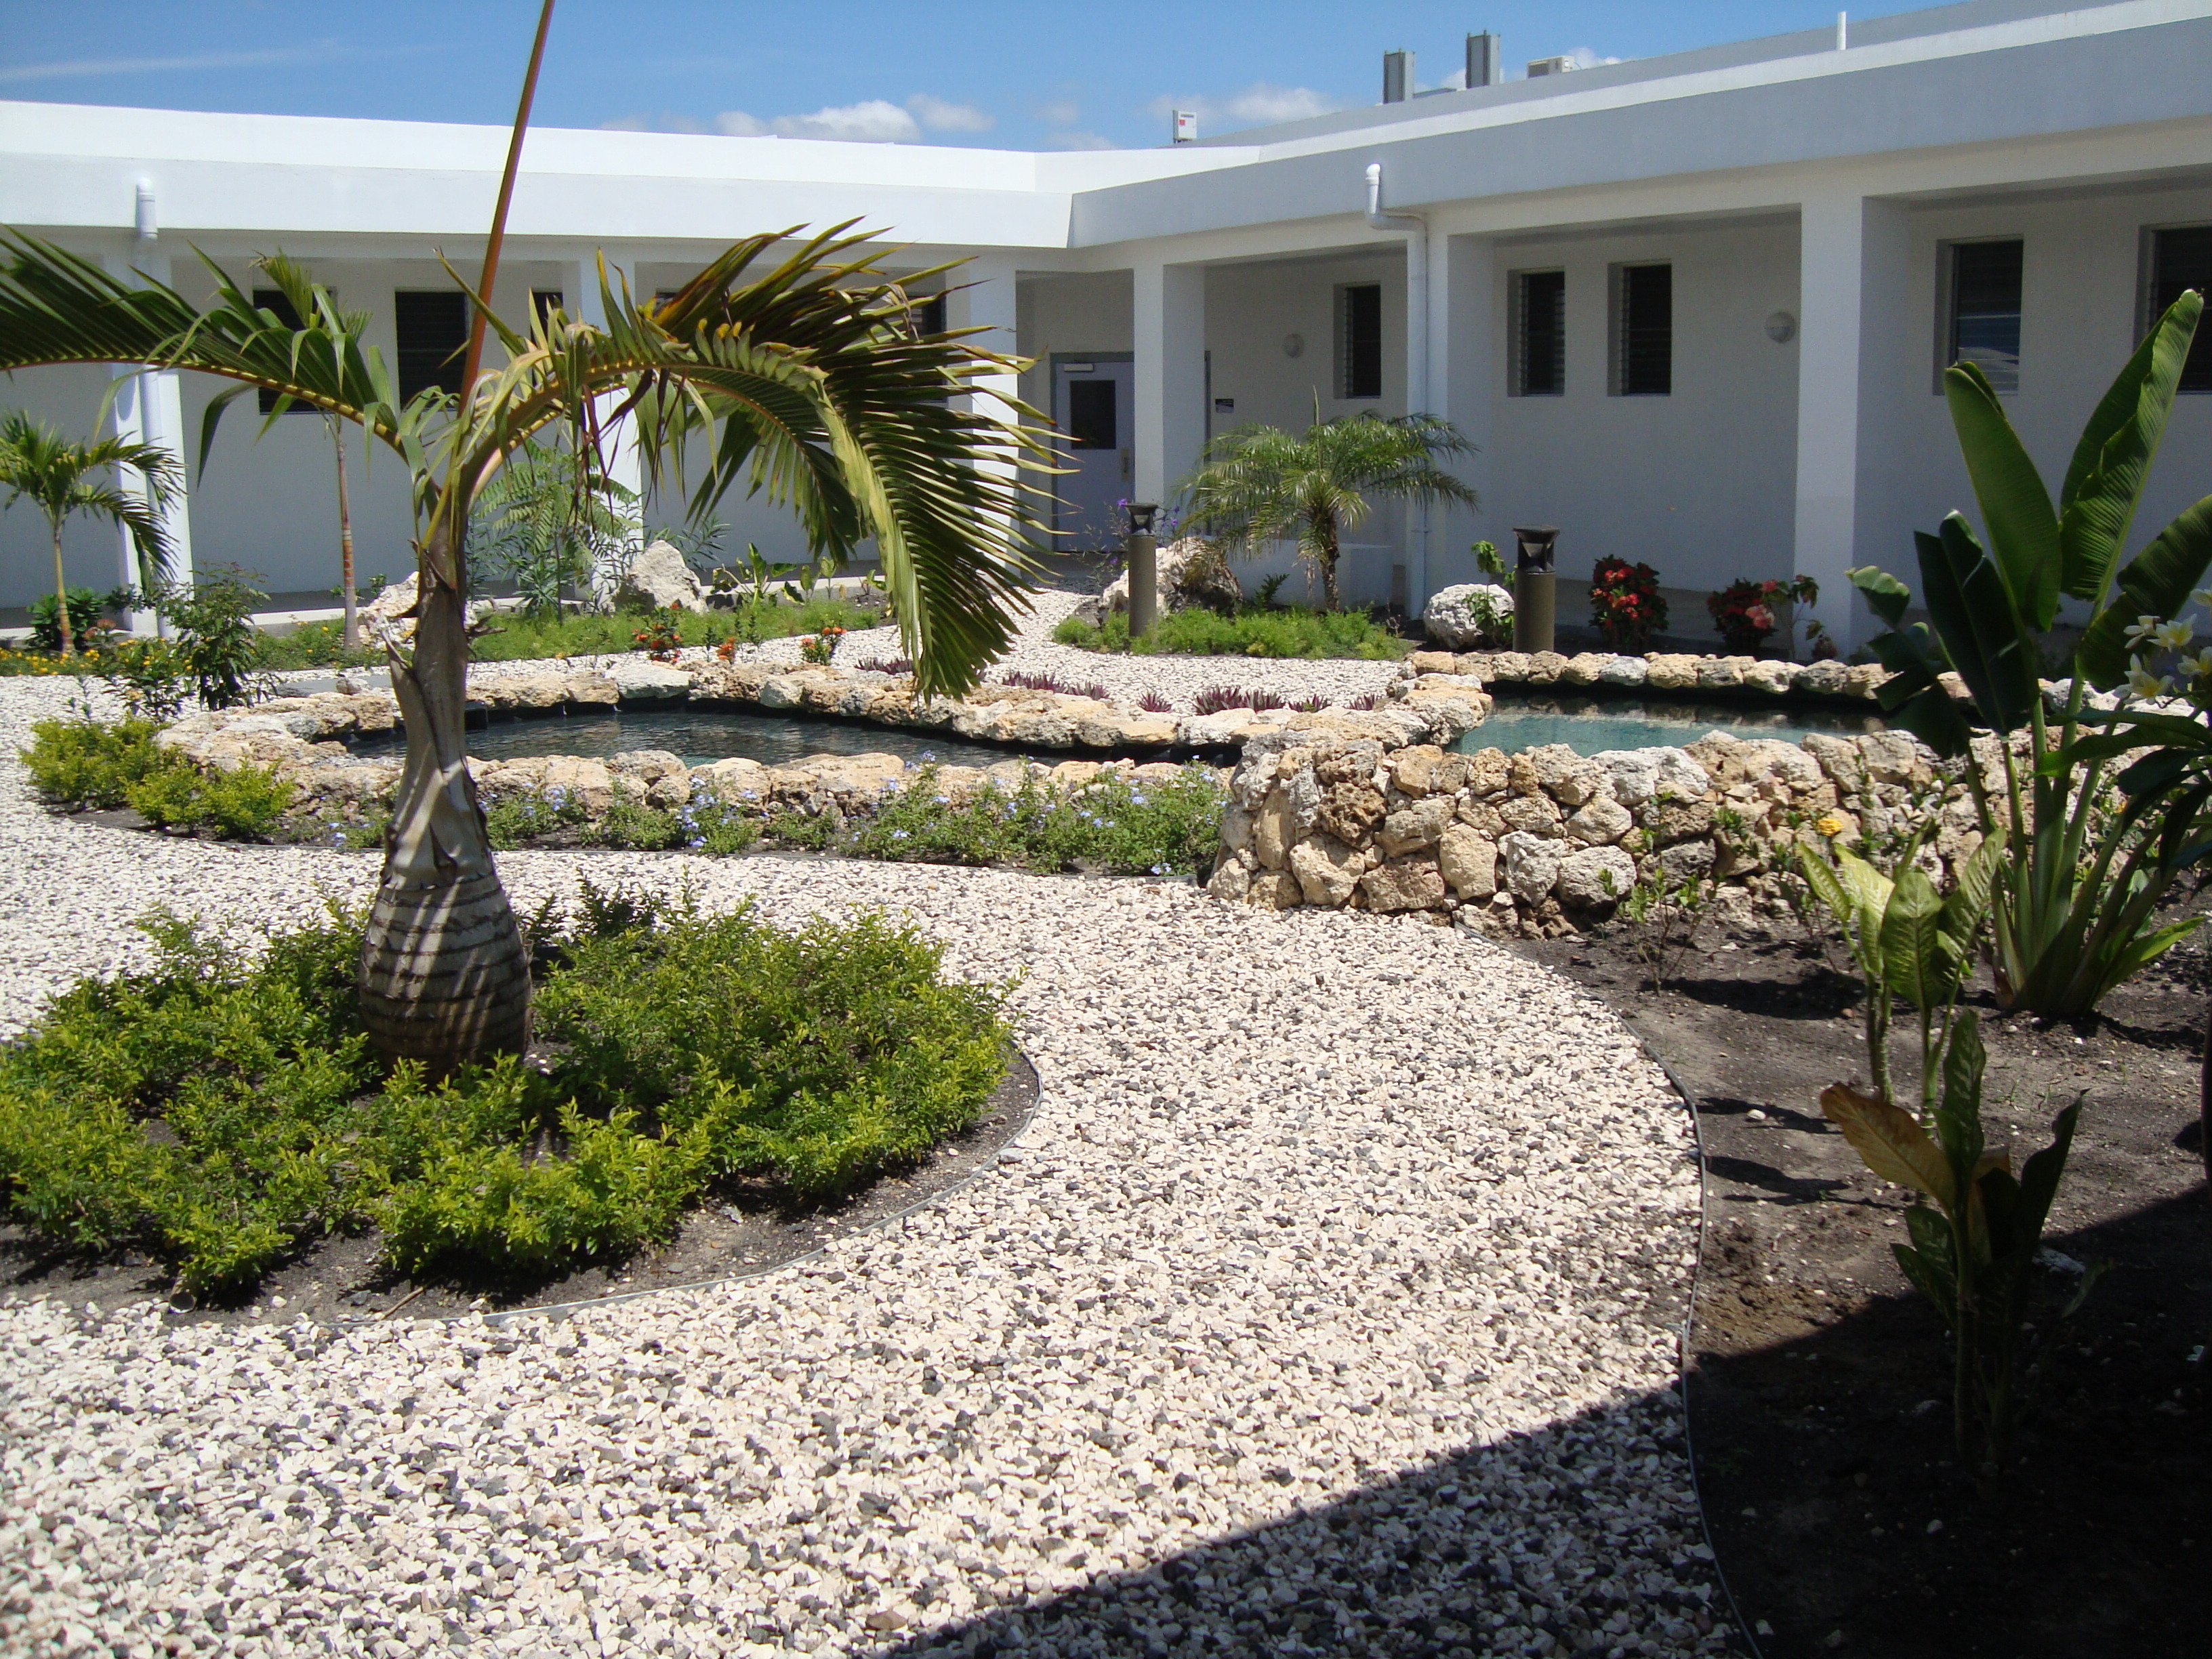 An interior courtyard in the hospital, which provides a healing and restorative area for patients to stroll.